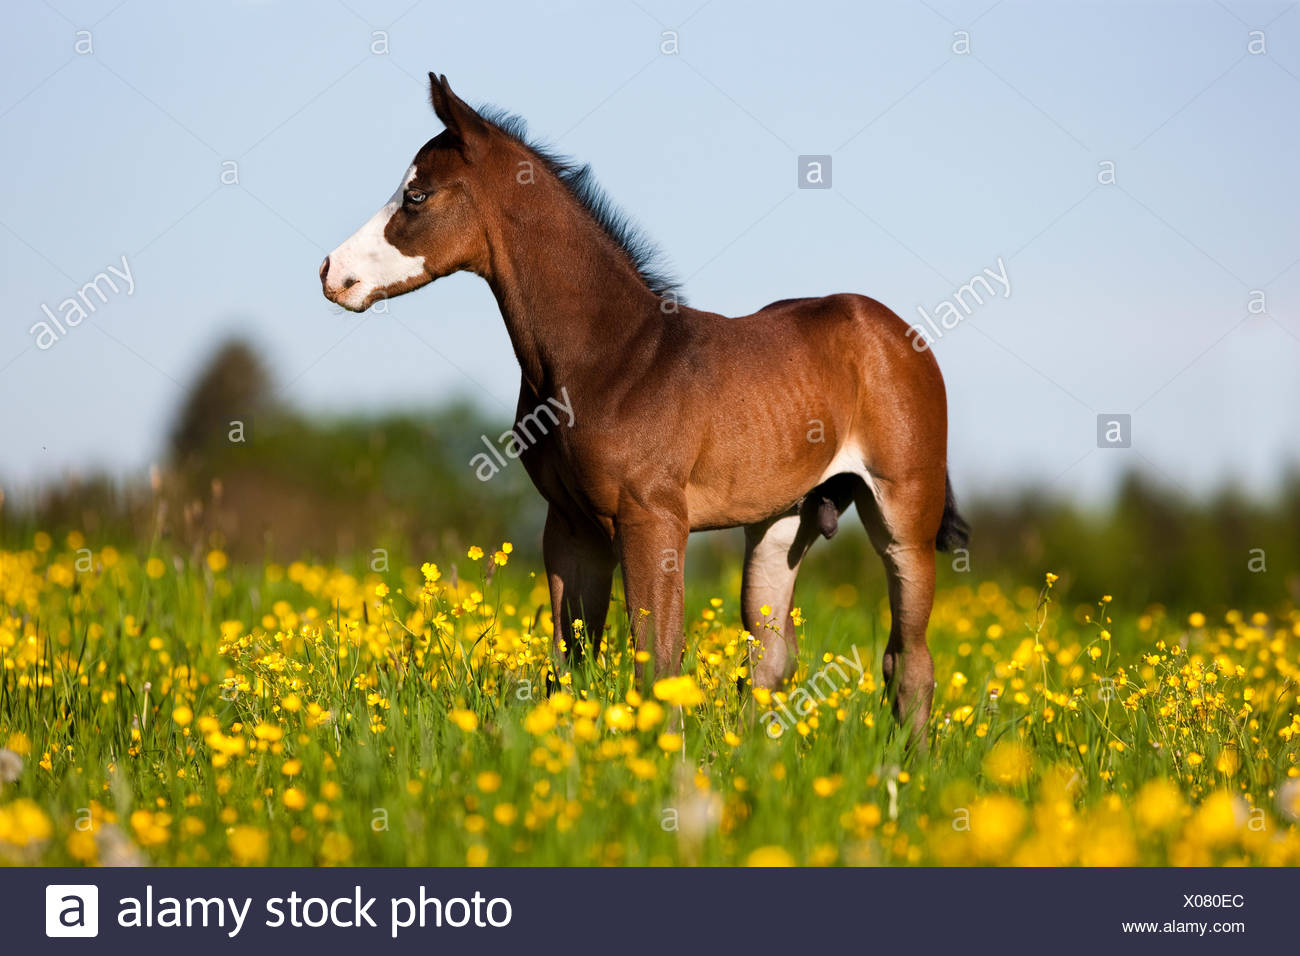 Paint Horse, bay horse, Foal stands in flower meadow - Stock Image